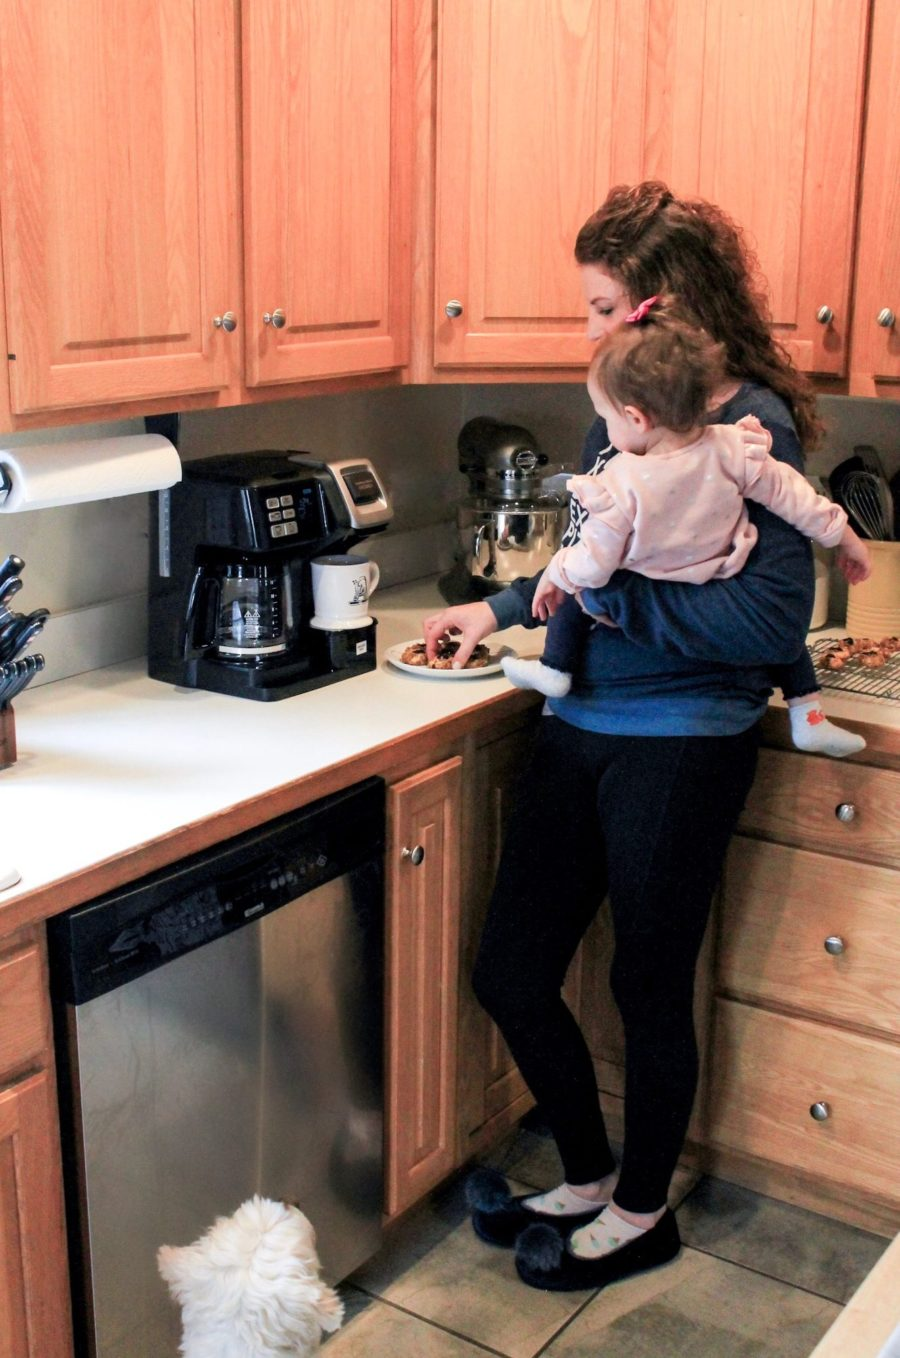 mom and baby, coffee maker